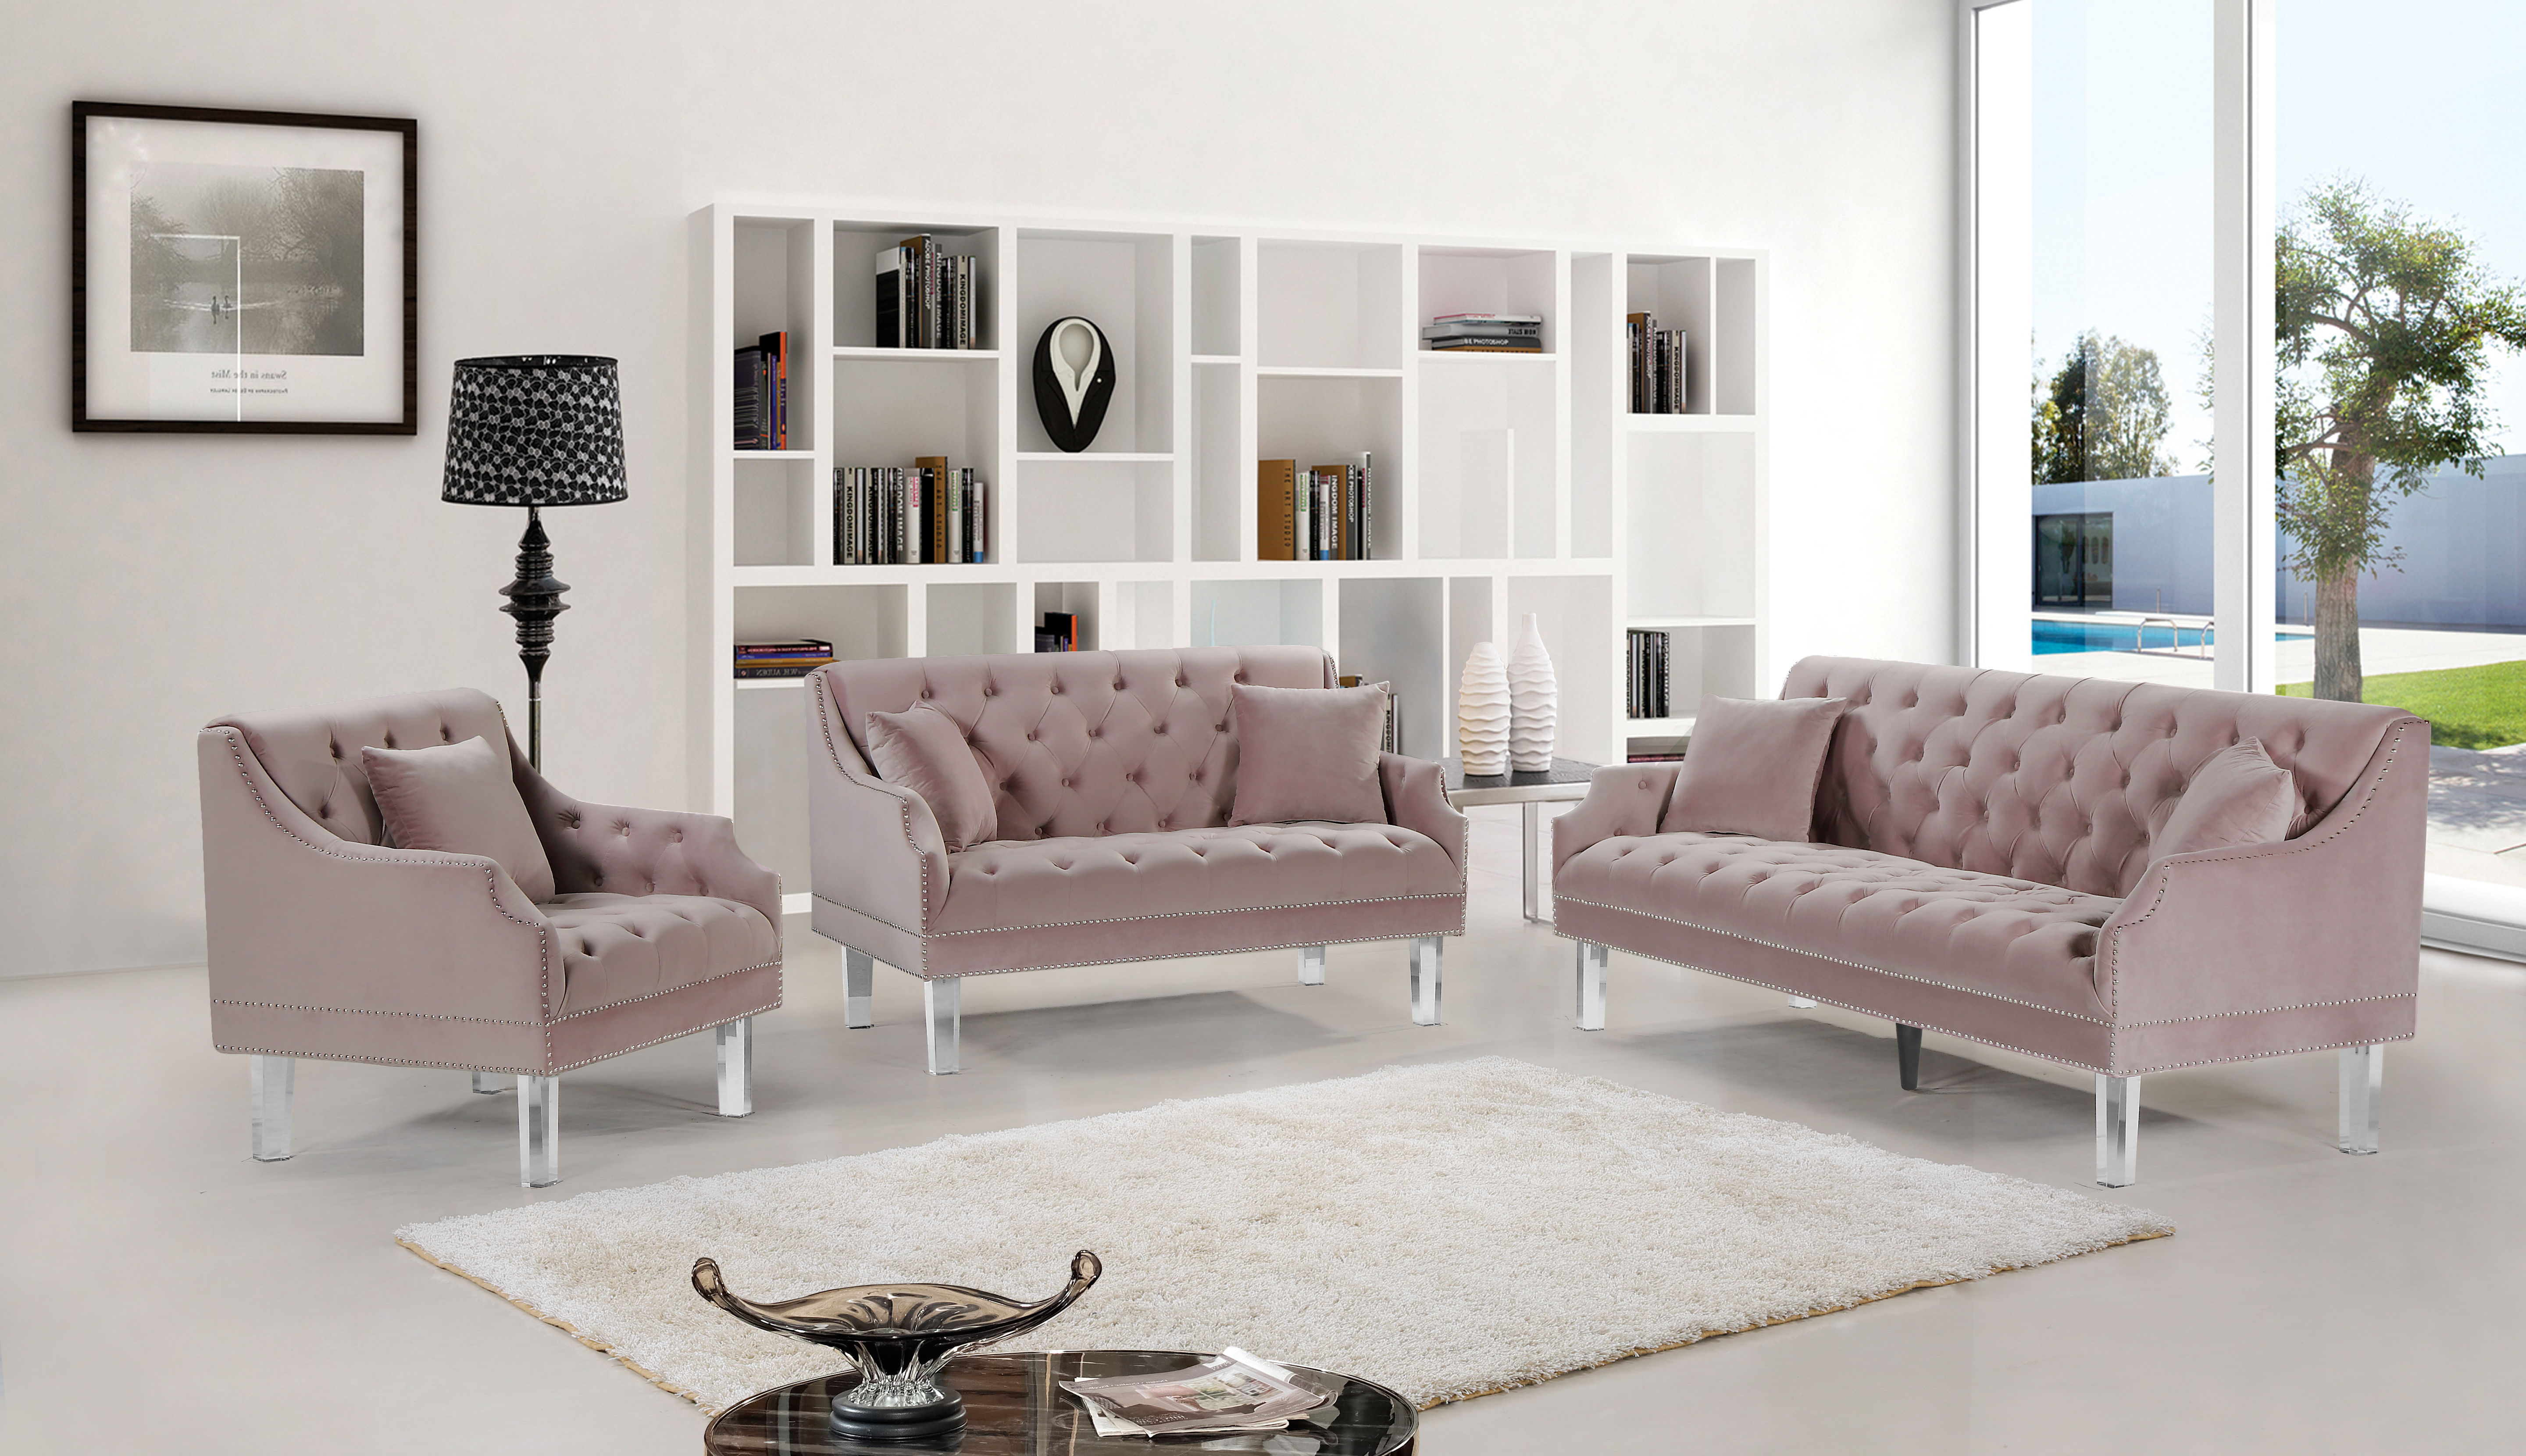 Meridian Furniture Roxy Pink Velvet 3pc Living Room Set The Classy with Pink Living Room Set